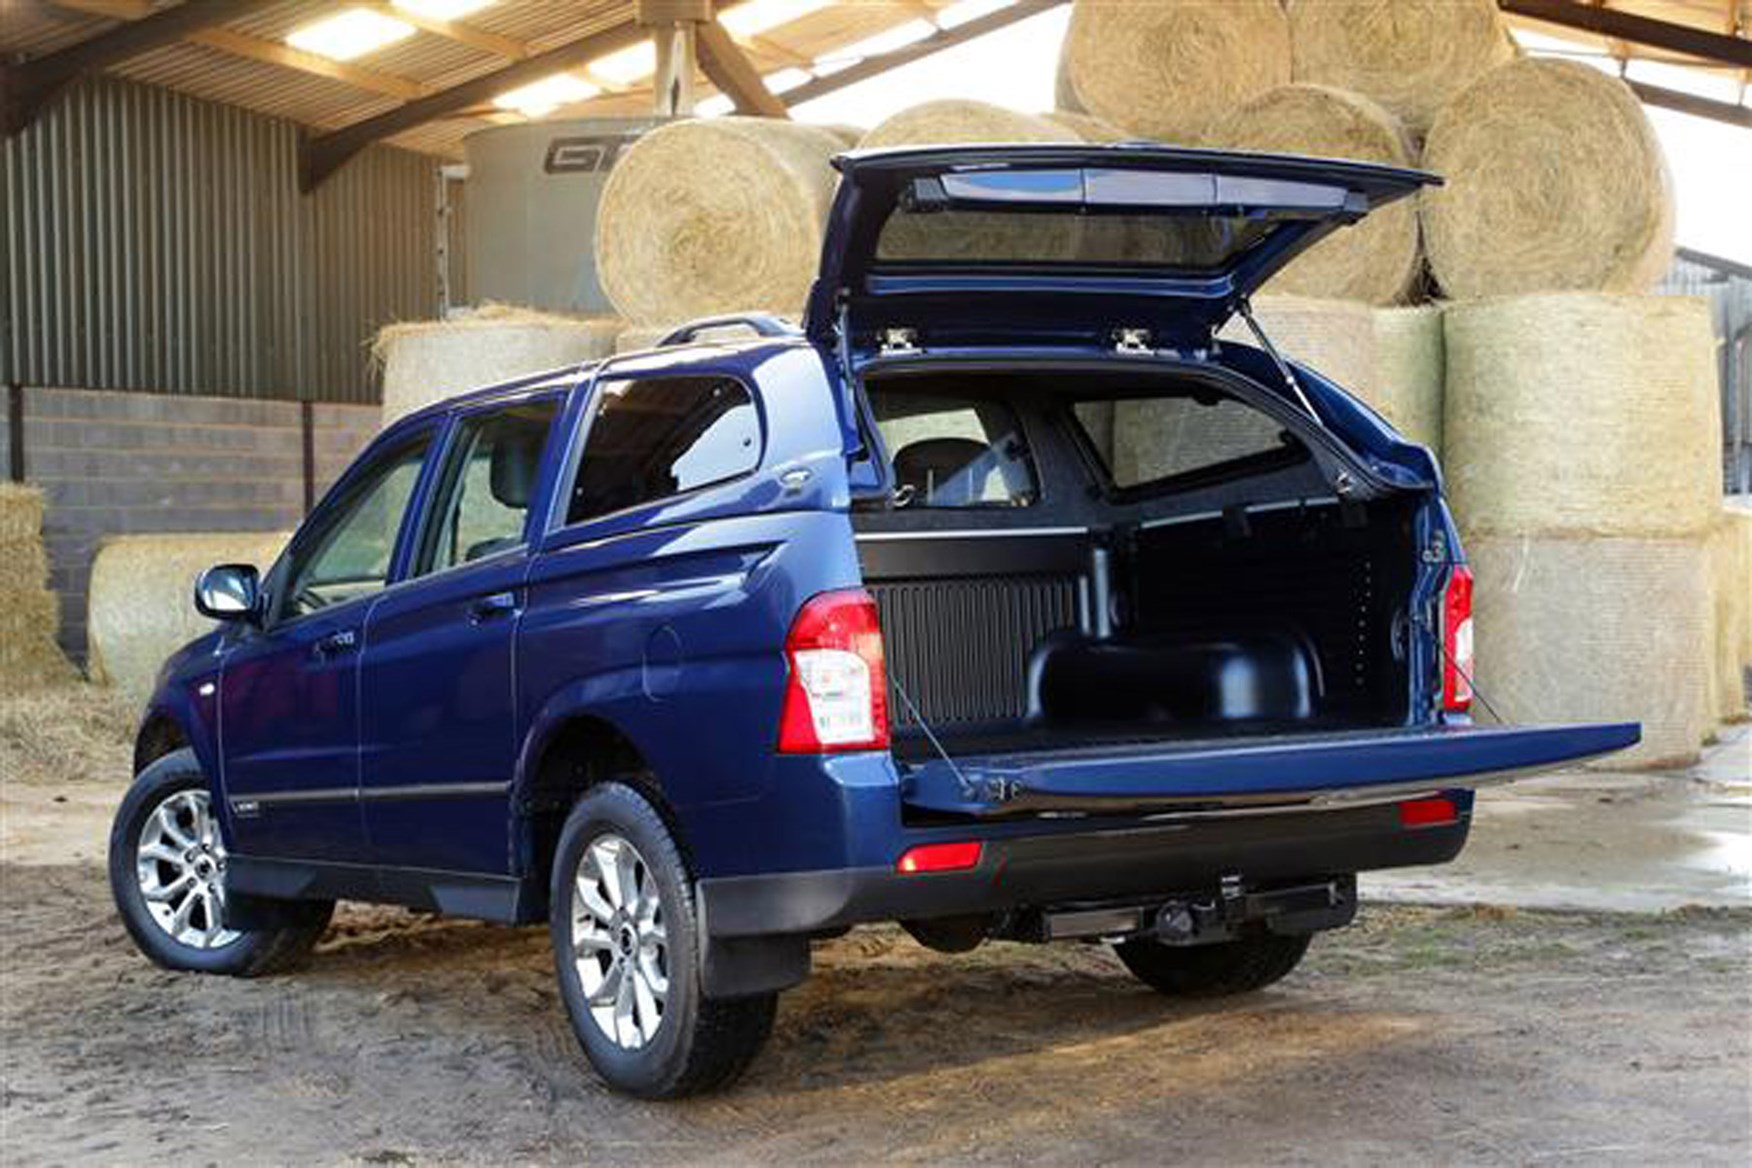 SsangYong Korando Sports review on Parkers Vans - load area capacity